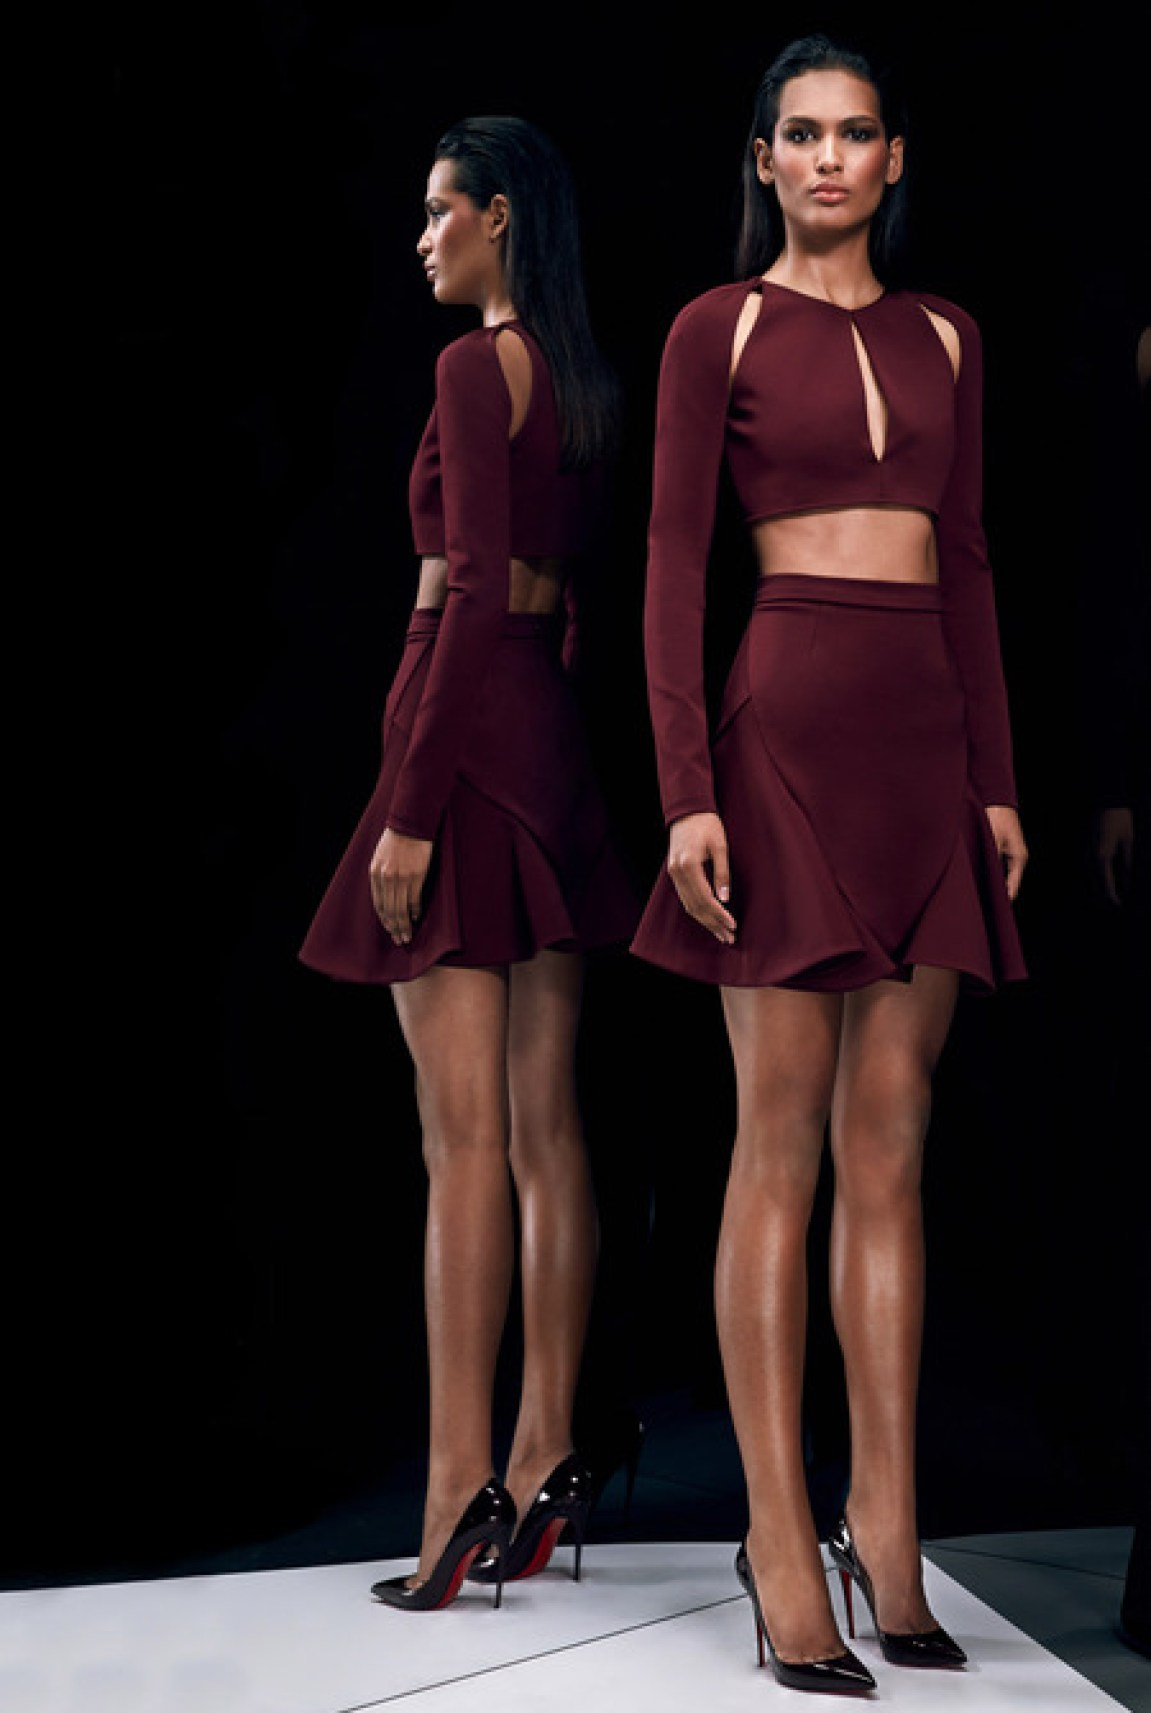 Cushnie-et-Ochs-pre-fall-2014_latest-designer-collections_regal-fashion-trends_delicate-style_high-end-fashion-bloggers-australia_luxury-bloggers-australia_top-fashion-bloggers-australia_best-fashion-editorials_2014_laser-cut-fashion-trend_tummy-showing-trends_maroon-suit